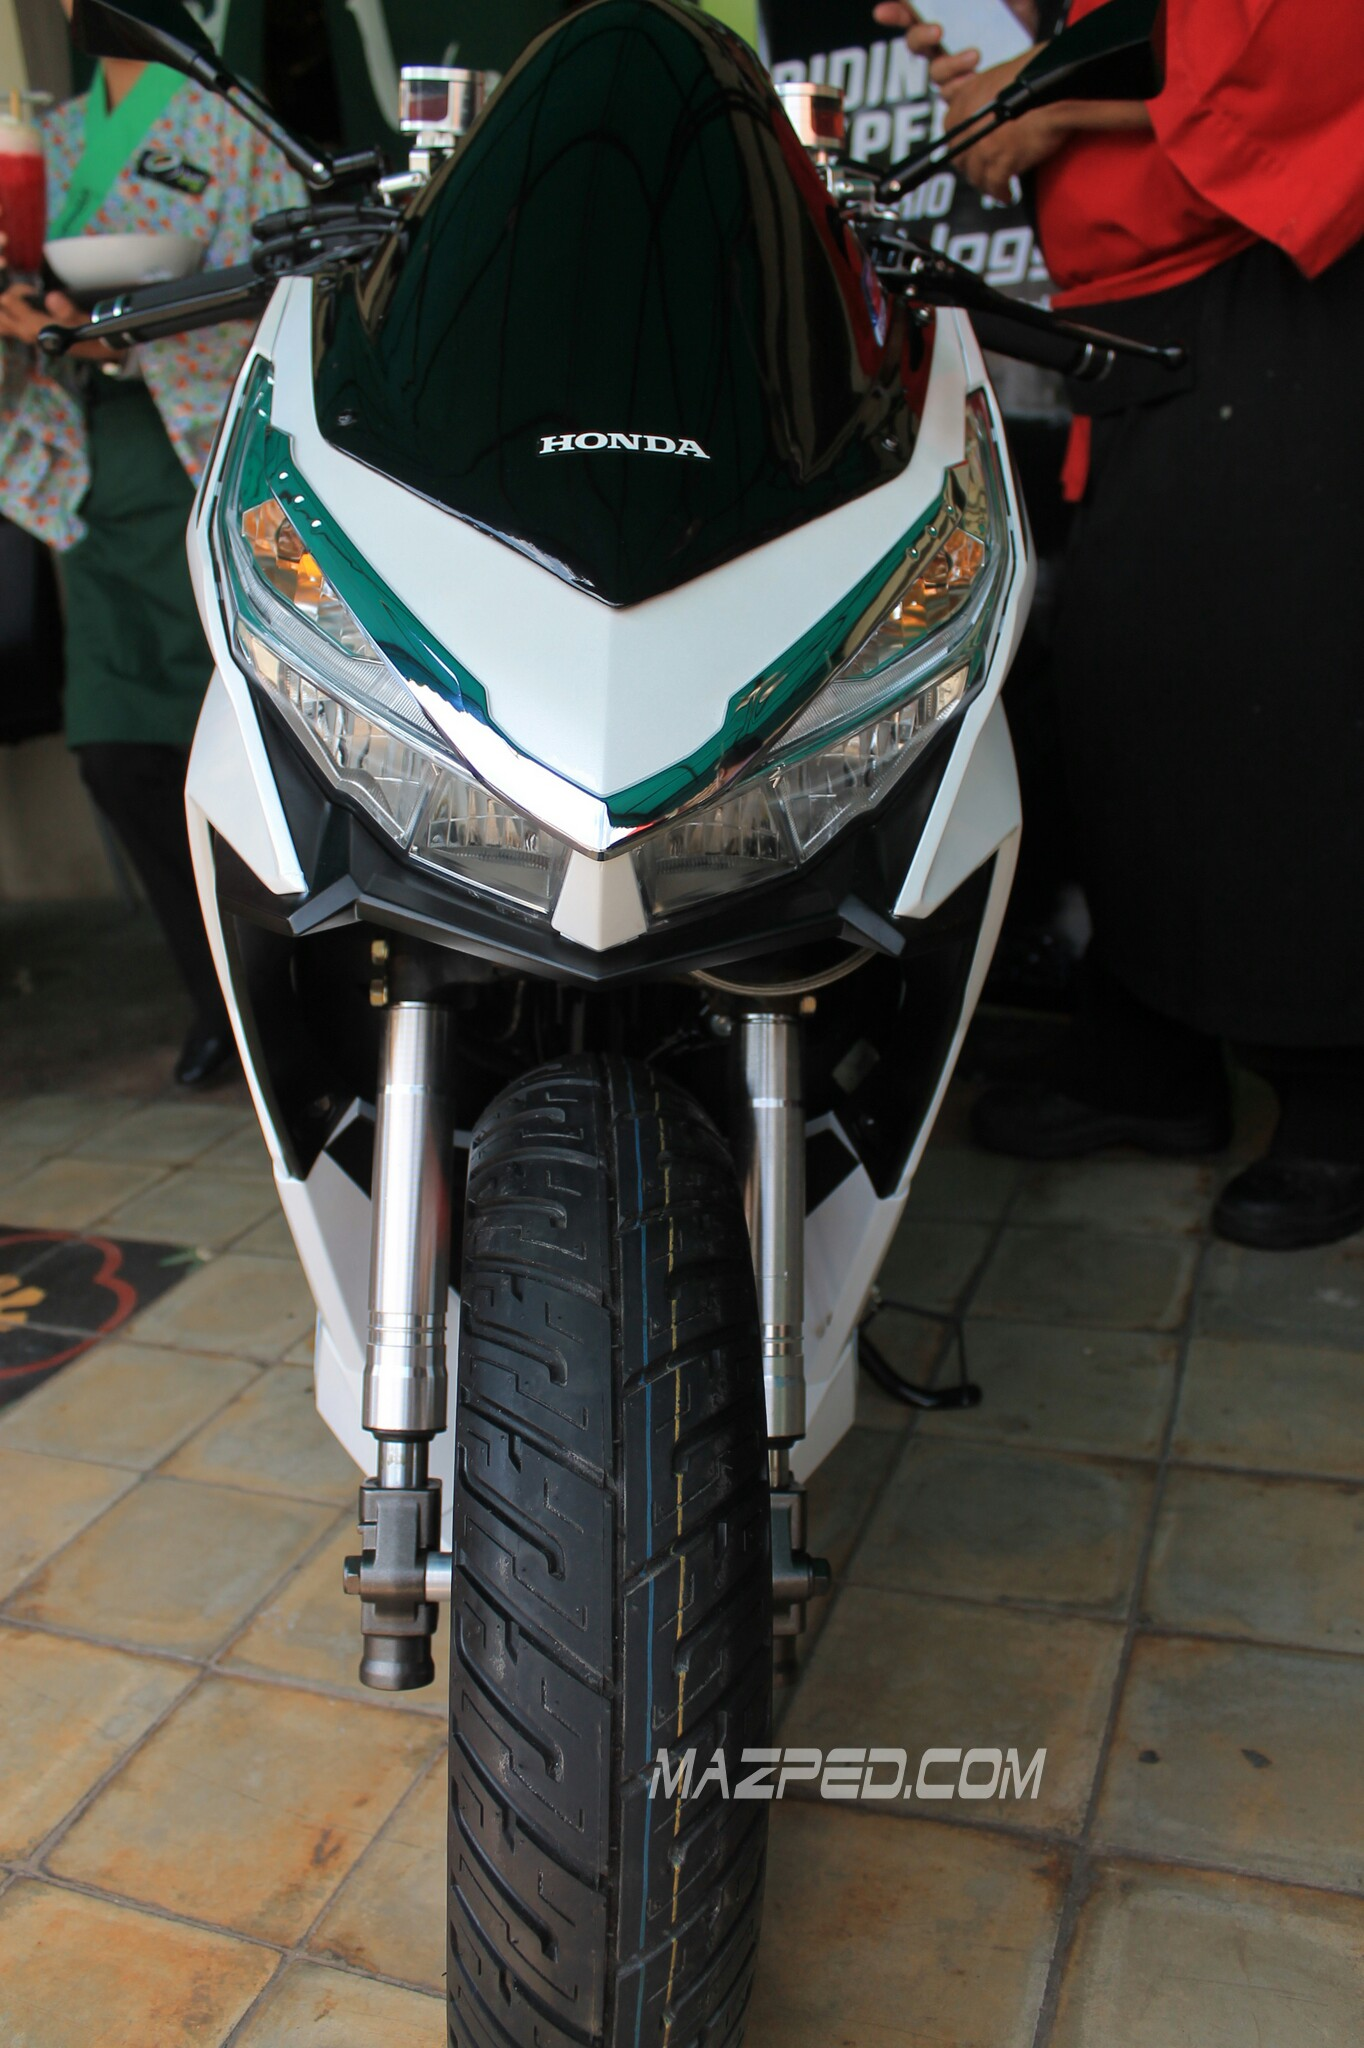 Download Kumpulan Modifikasi Motor Vario 150 Warna Putih Terkeren